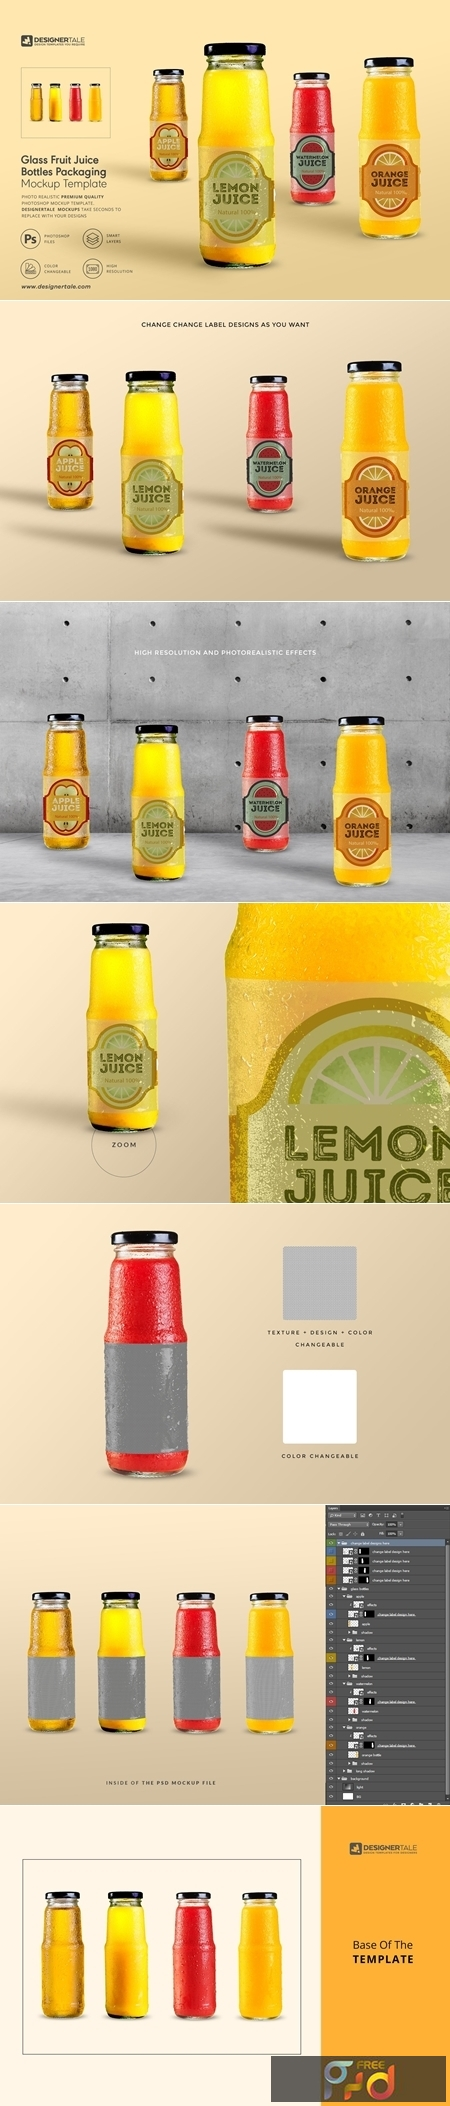 Fruit Juice Glass Container Mockup 4138030 1